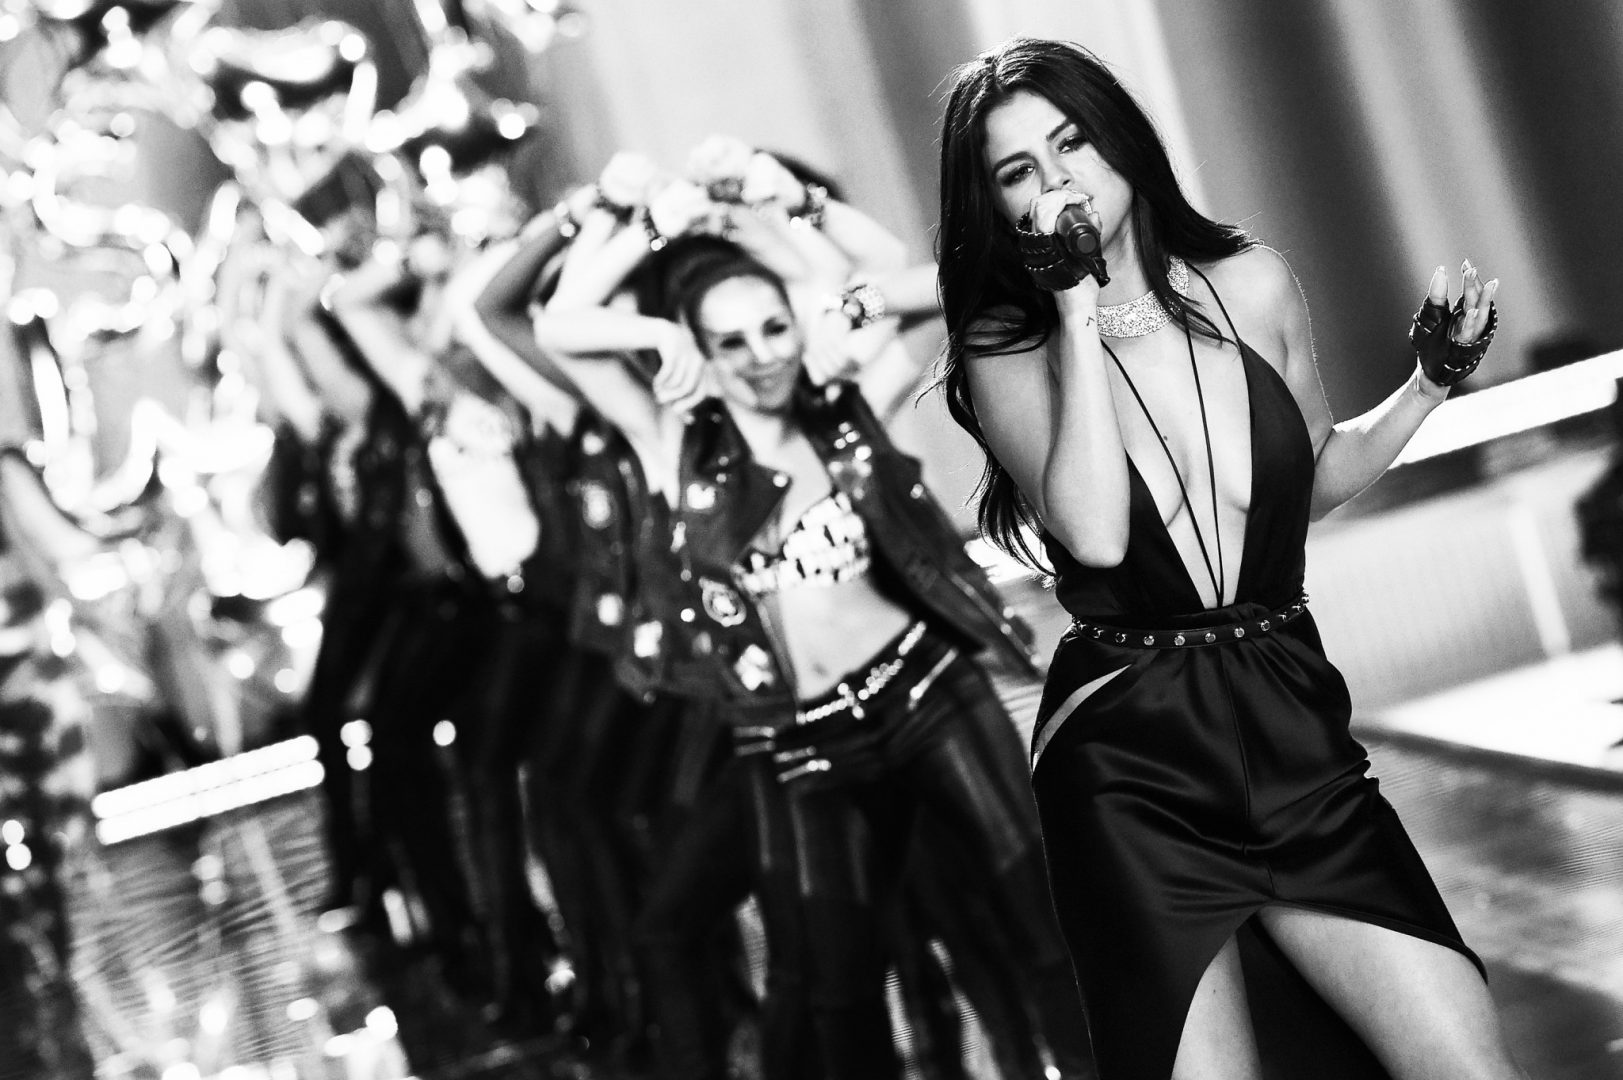 Selena Gomez on-stage at Victoria's Secret Fashion Show Loaded